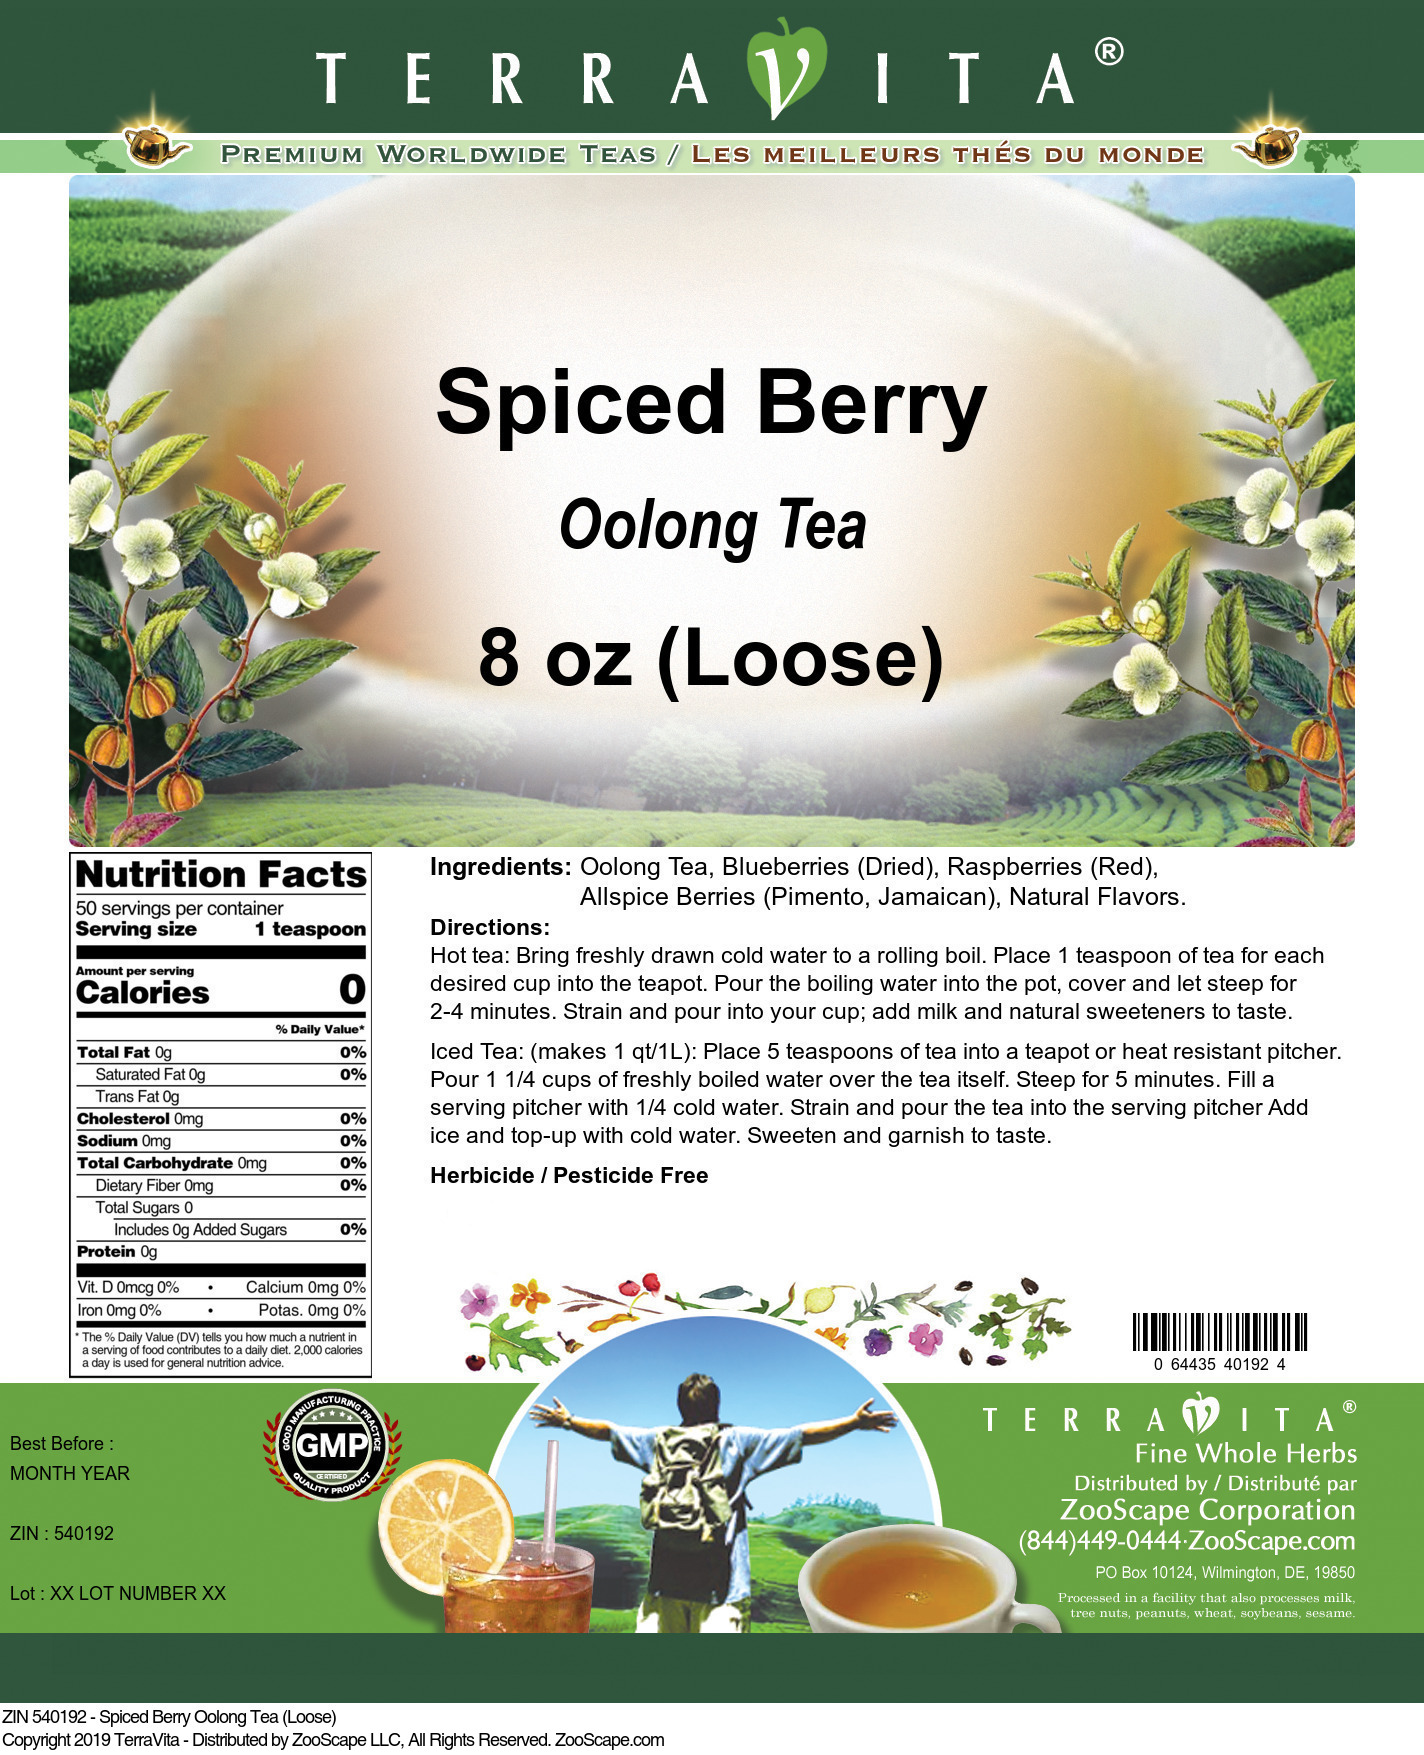 Spiced Berry Oolong Tea (Loose)